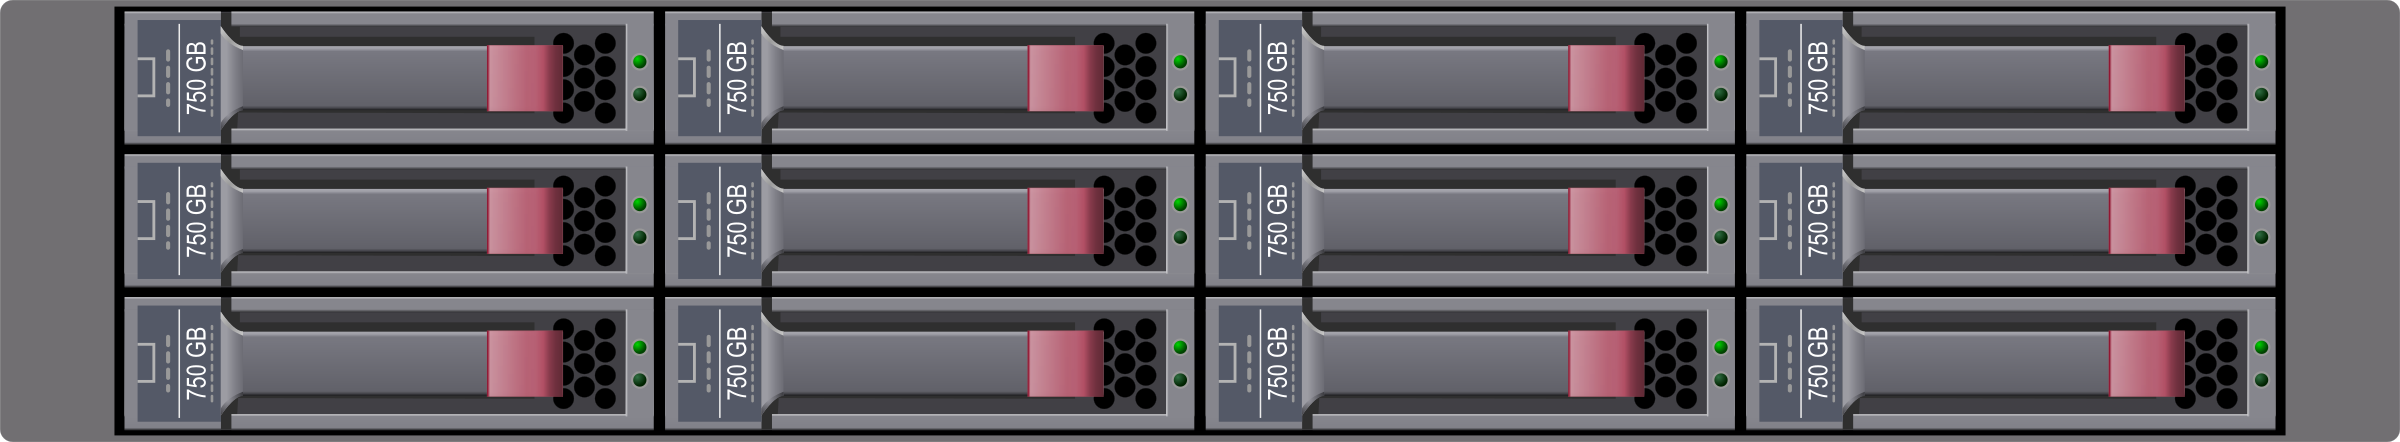 SATA Disk Array by Rob Fenwitch